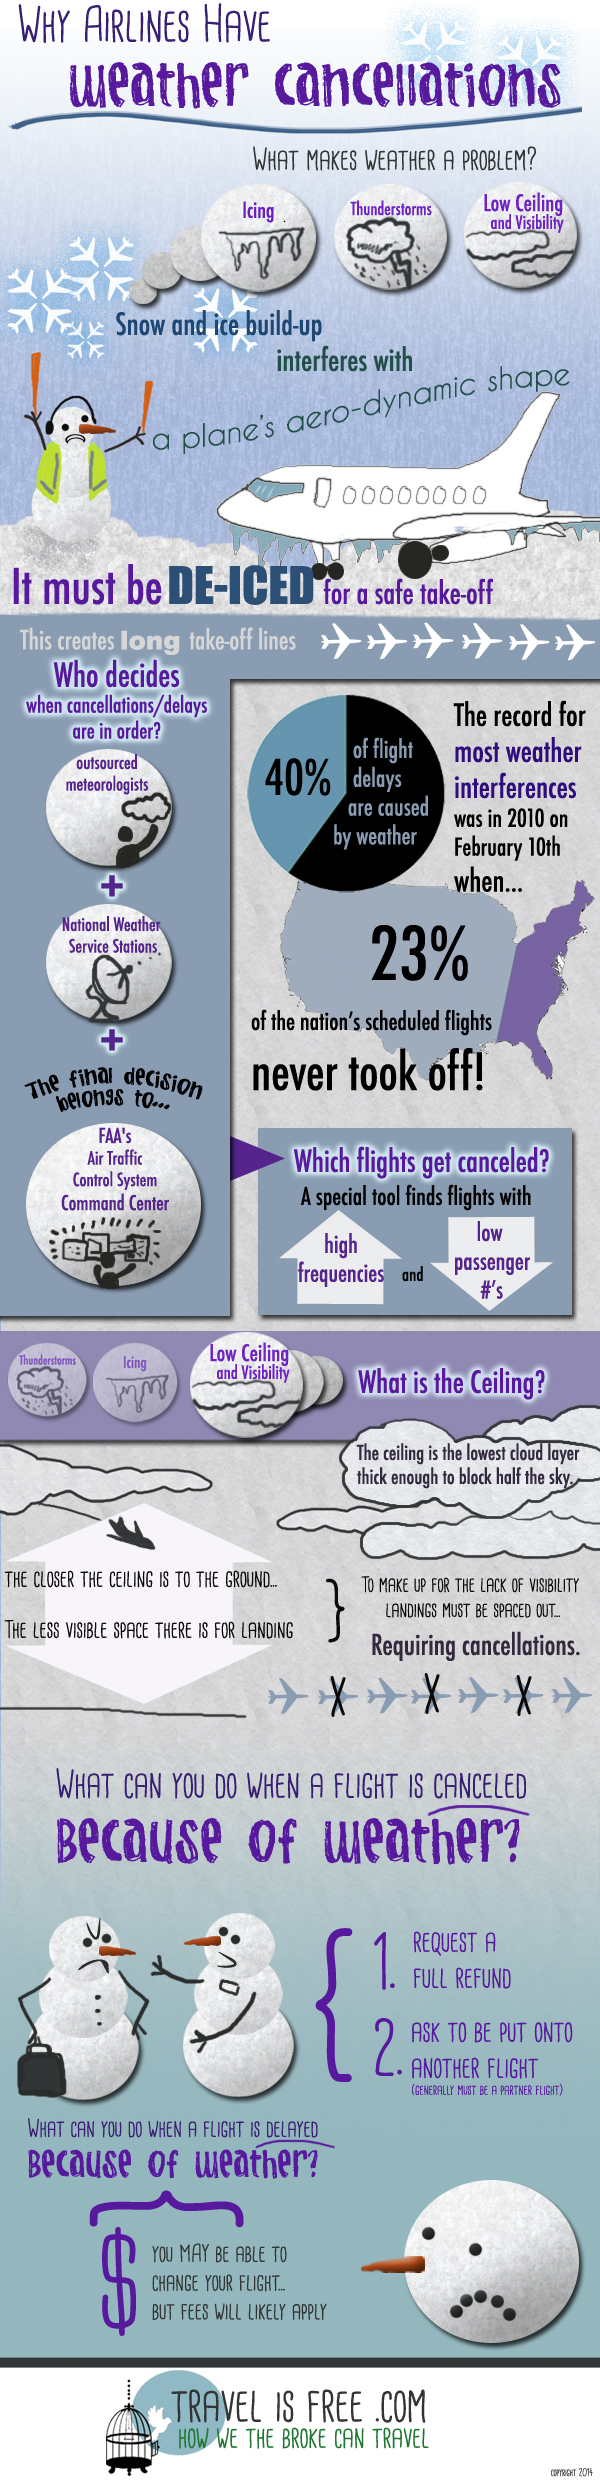 Why Airlines Have Weather Cancellations